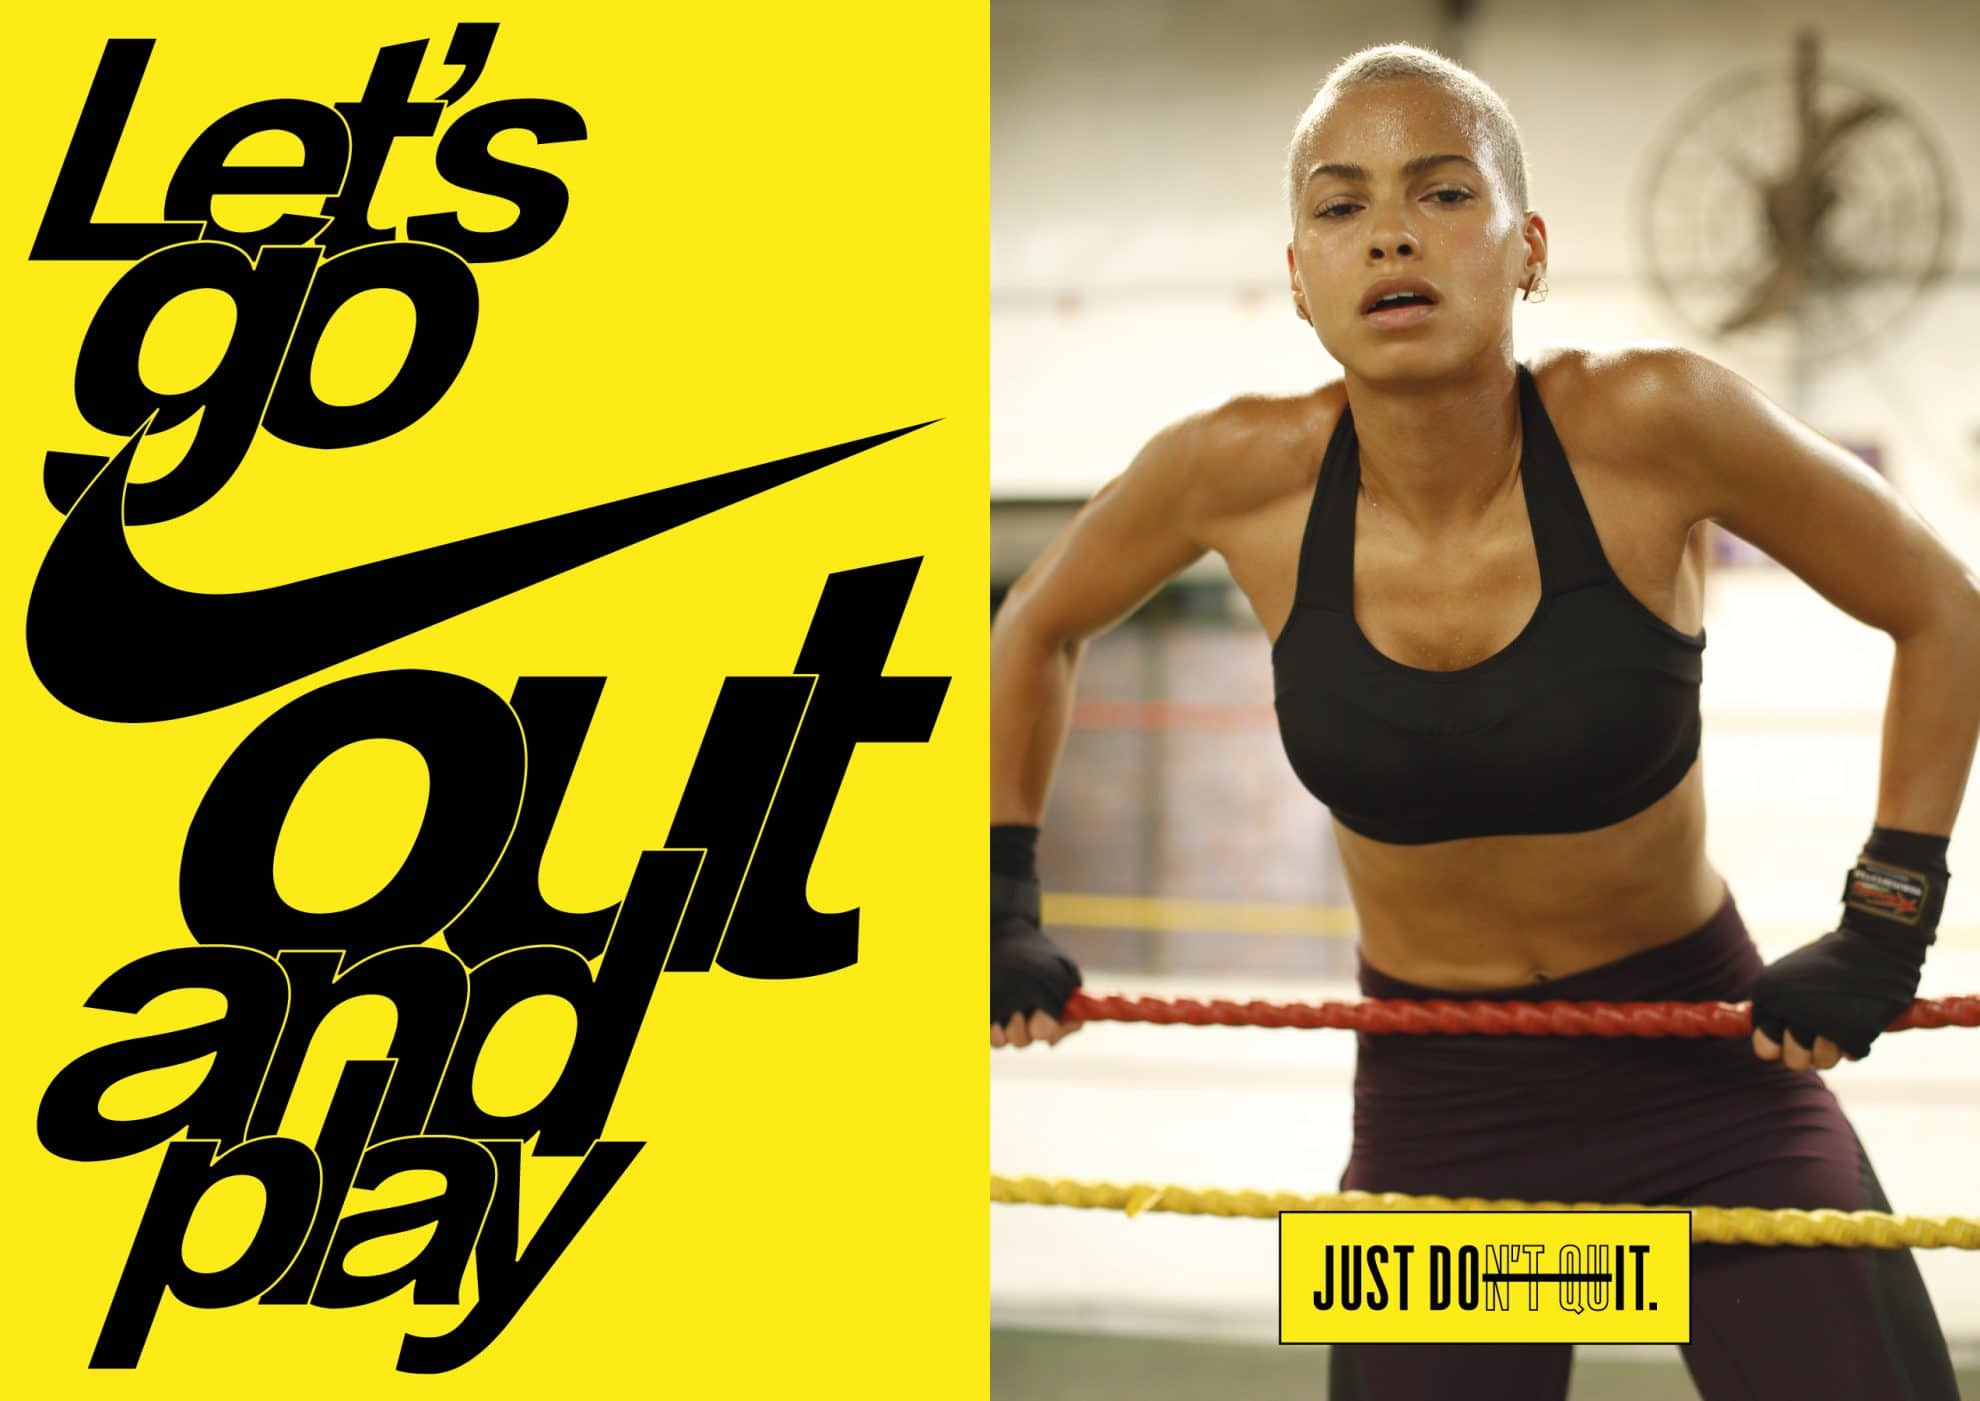 Nike Just Don't Quit 028